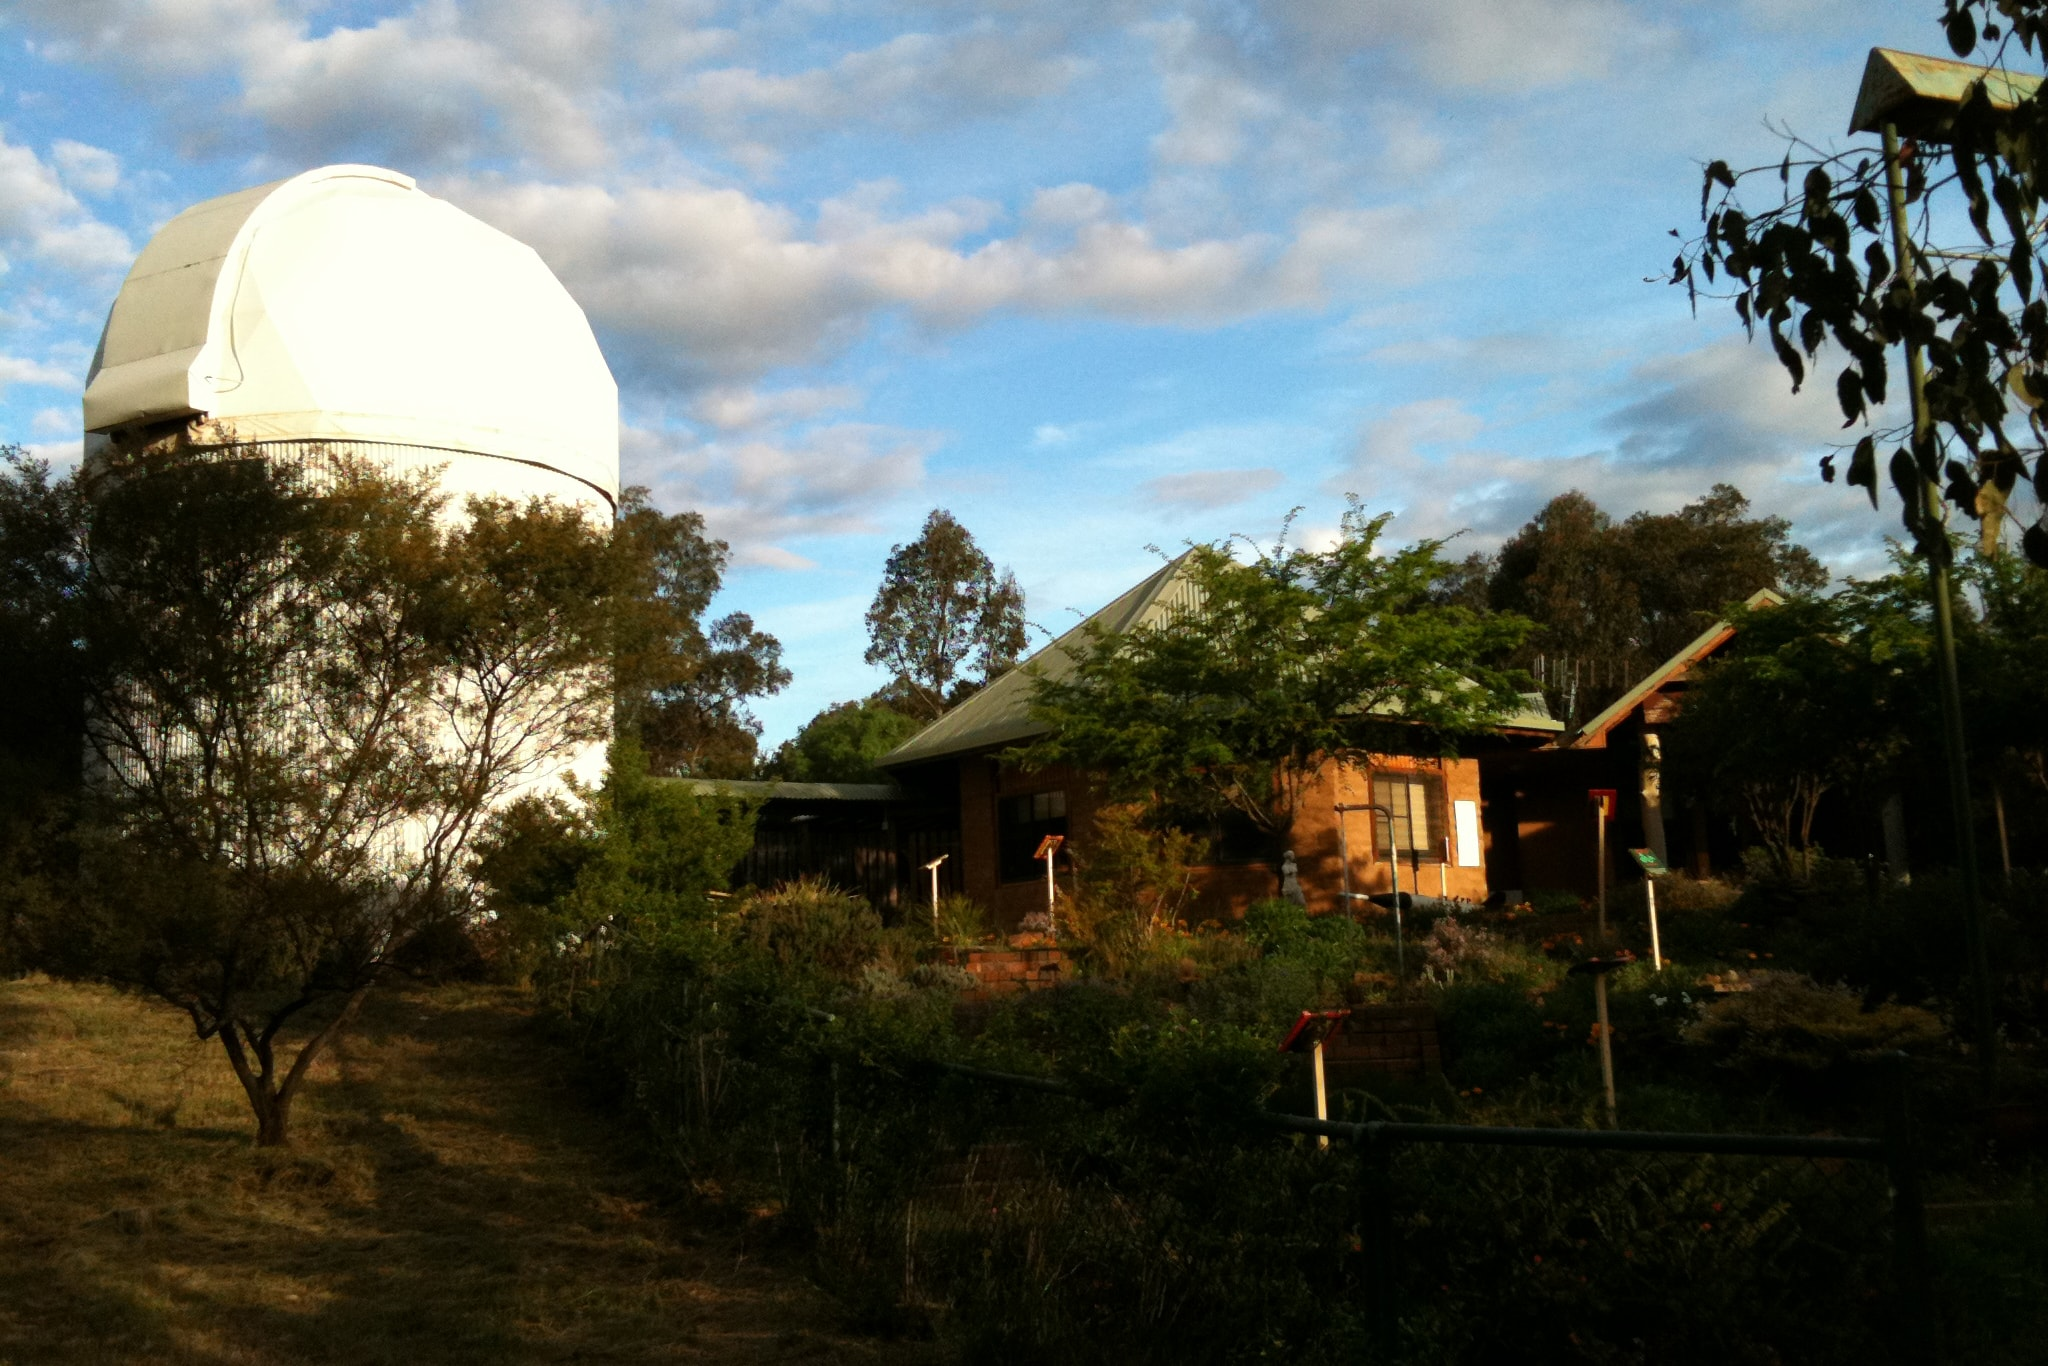 Skywatch Observatories Dome Stays, Coonabarabran, Australia